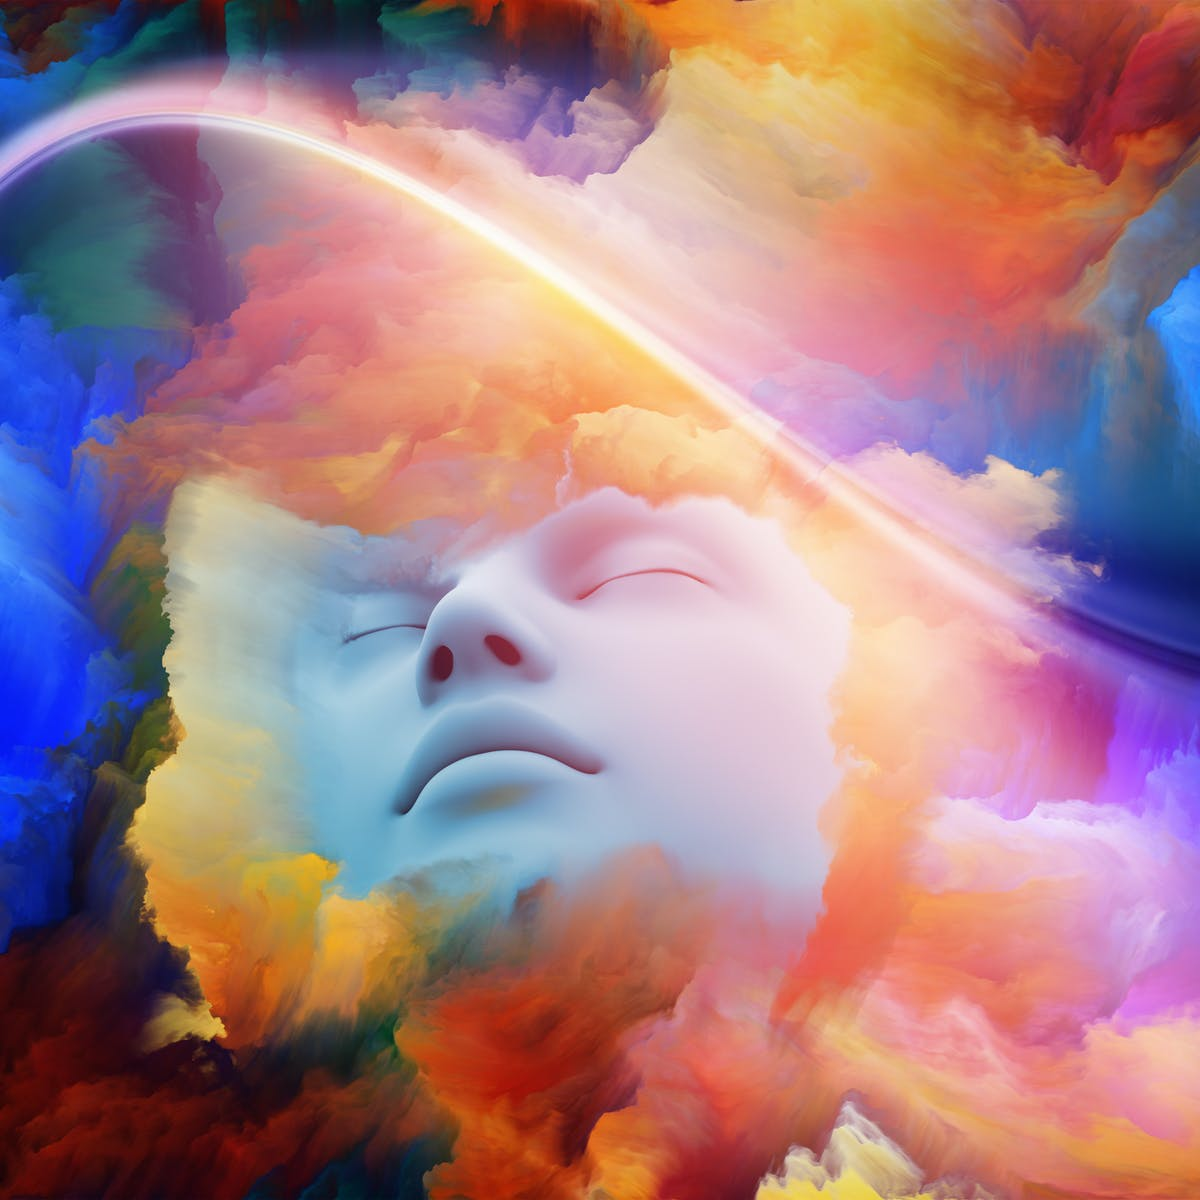 The ability to control dreams may help us unravel the